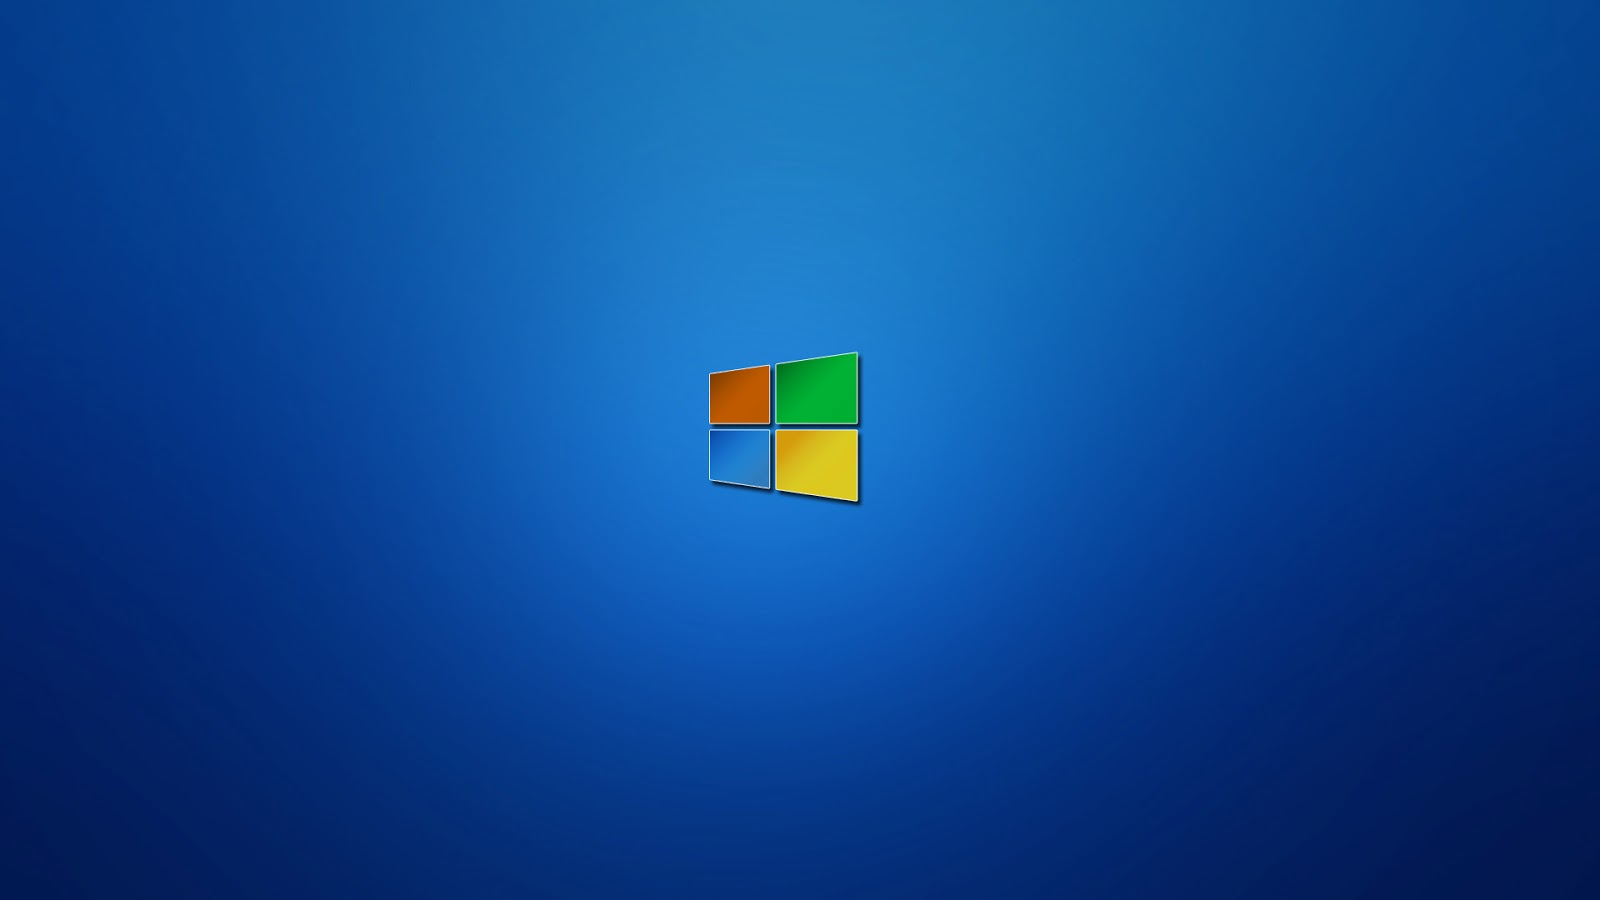 win 8 wallpapers hd - wallpapersafari